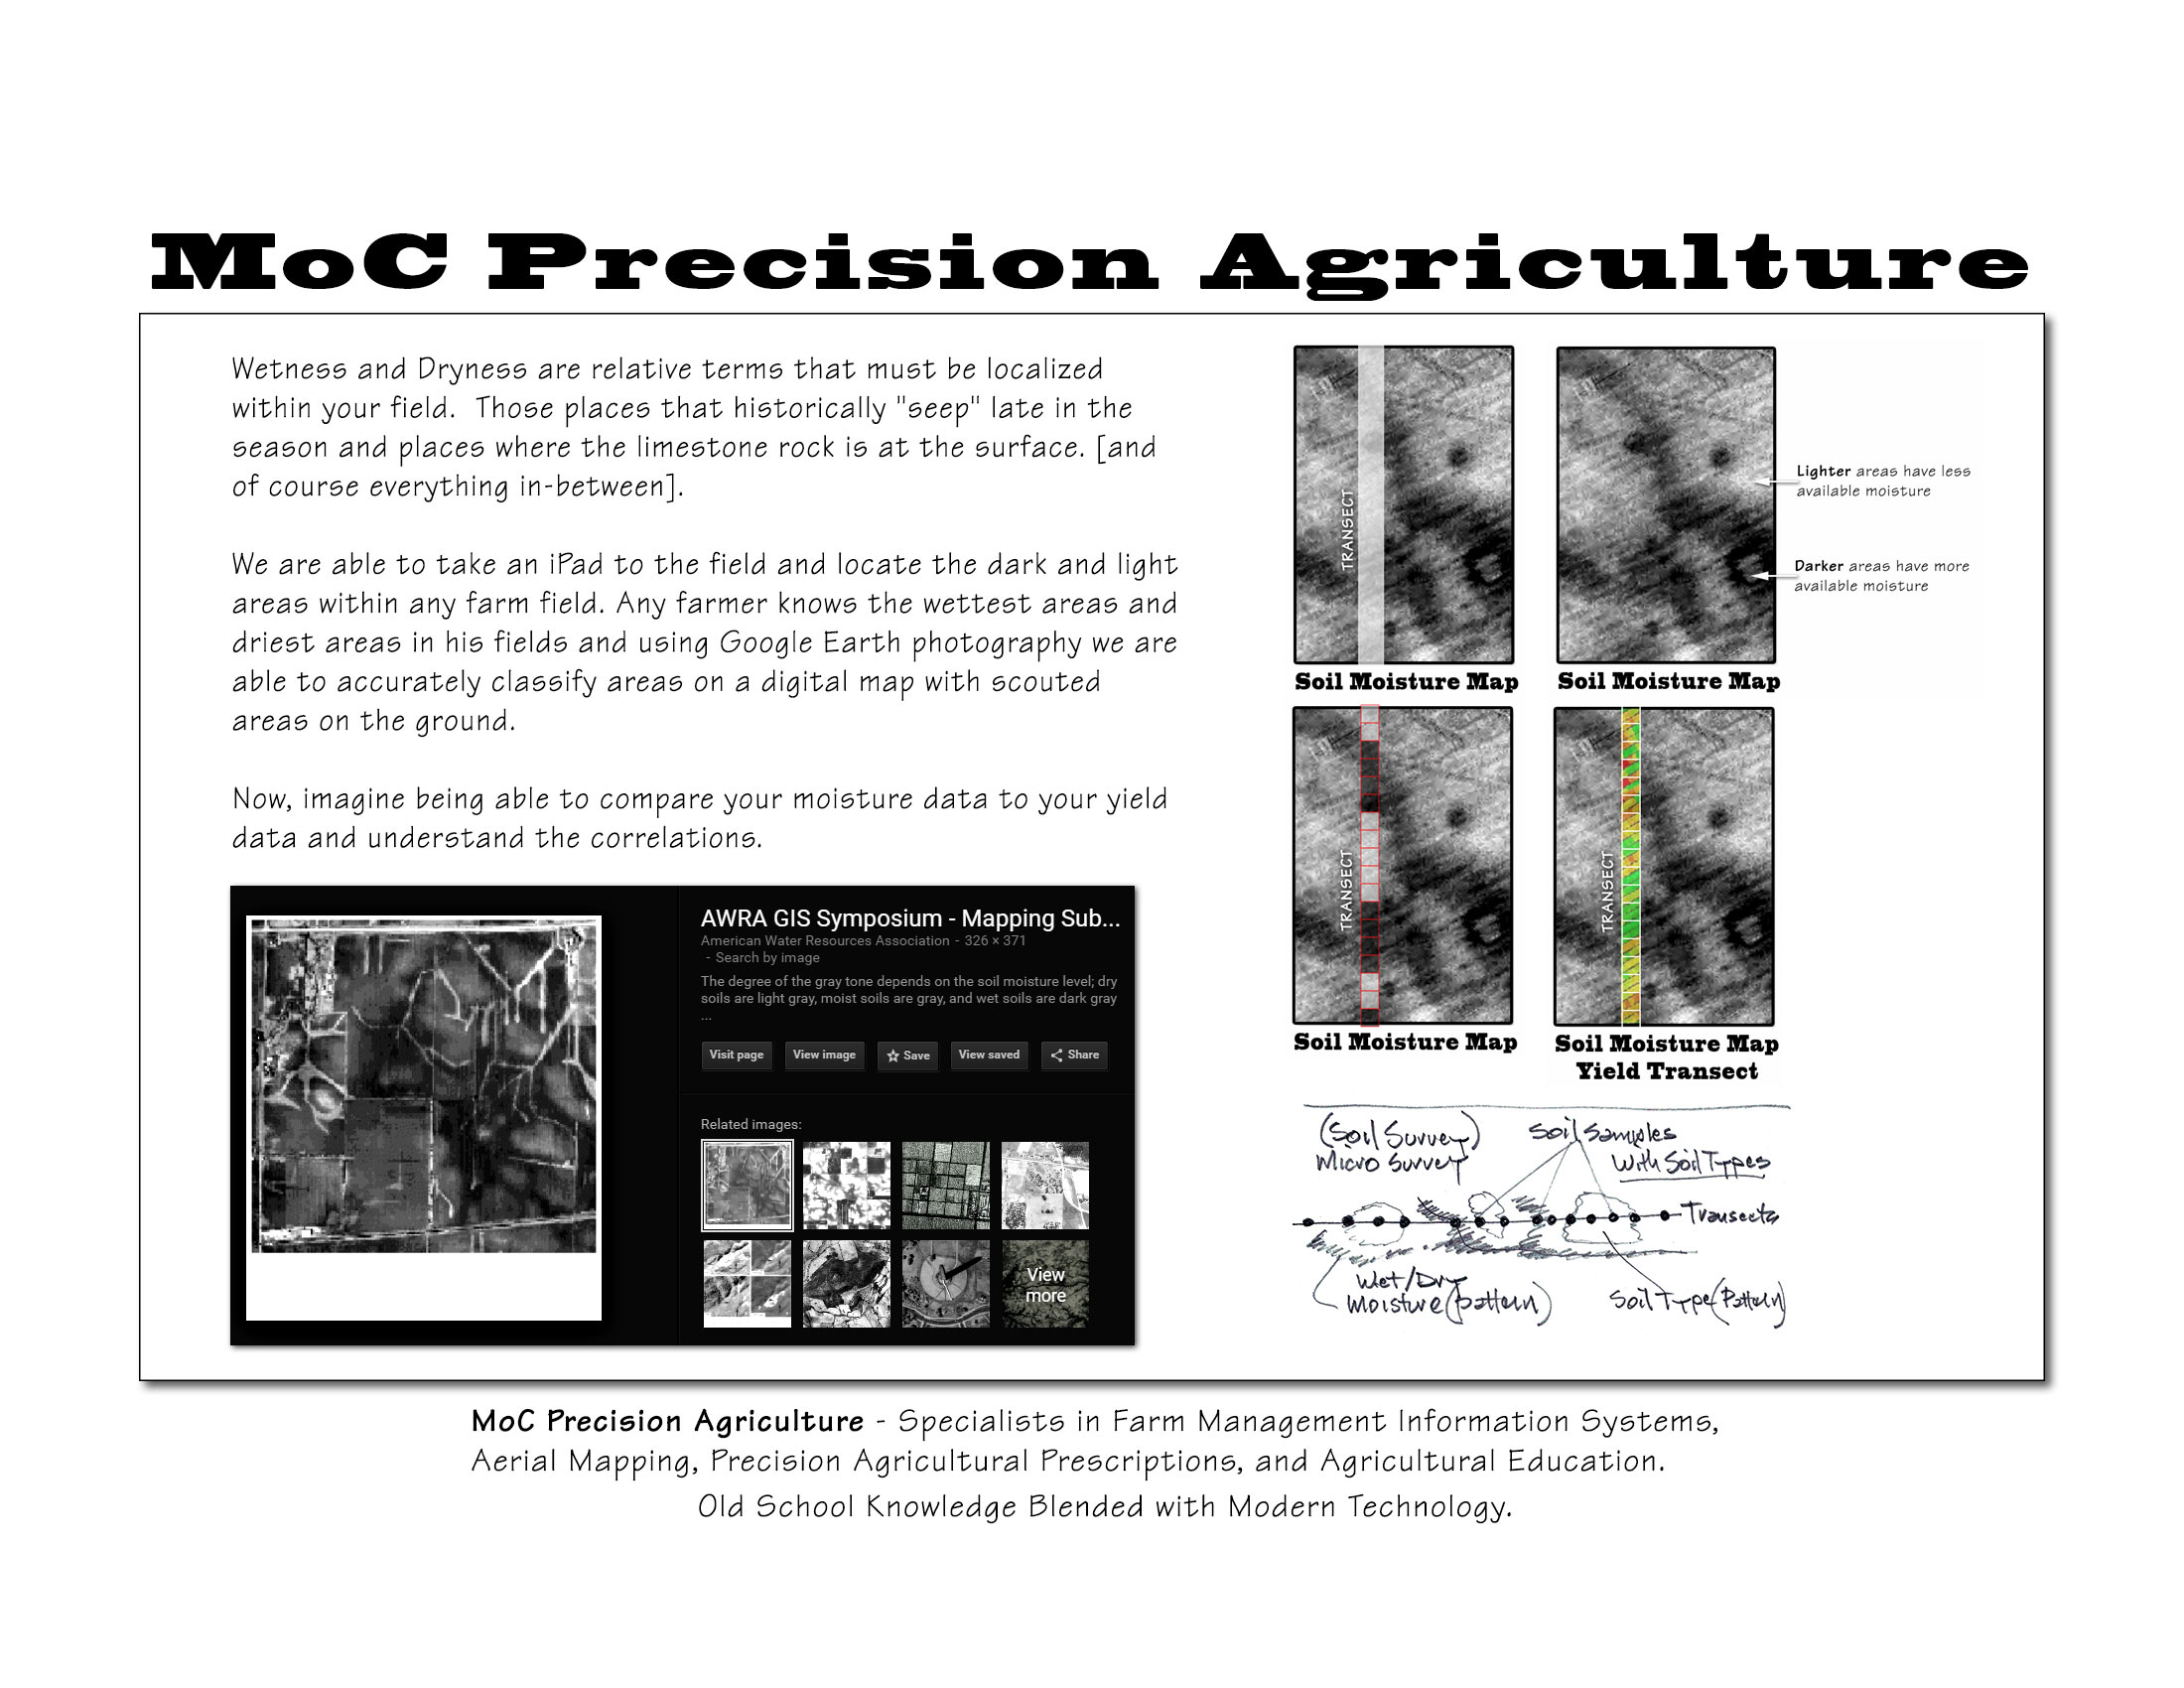 MoC_Precision_Farming_wet-dry